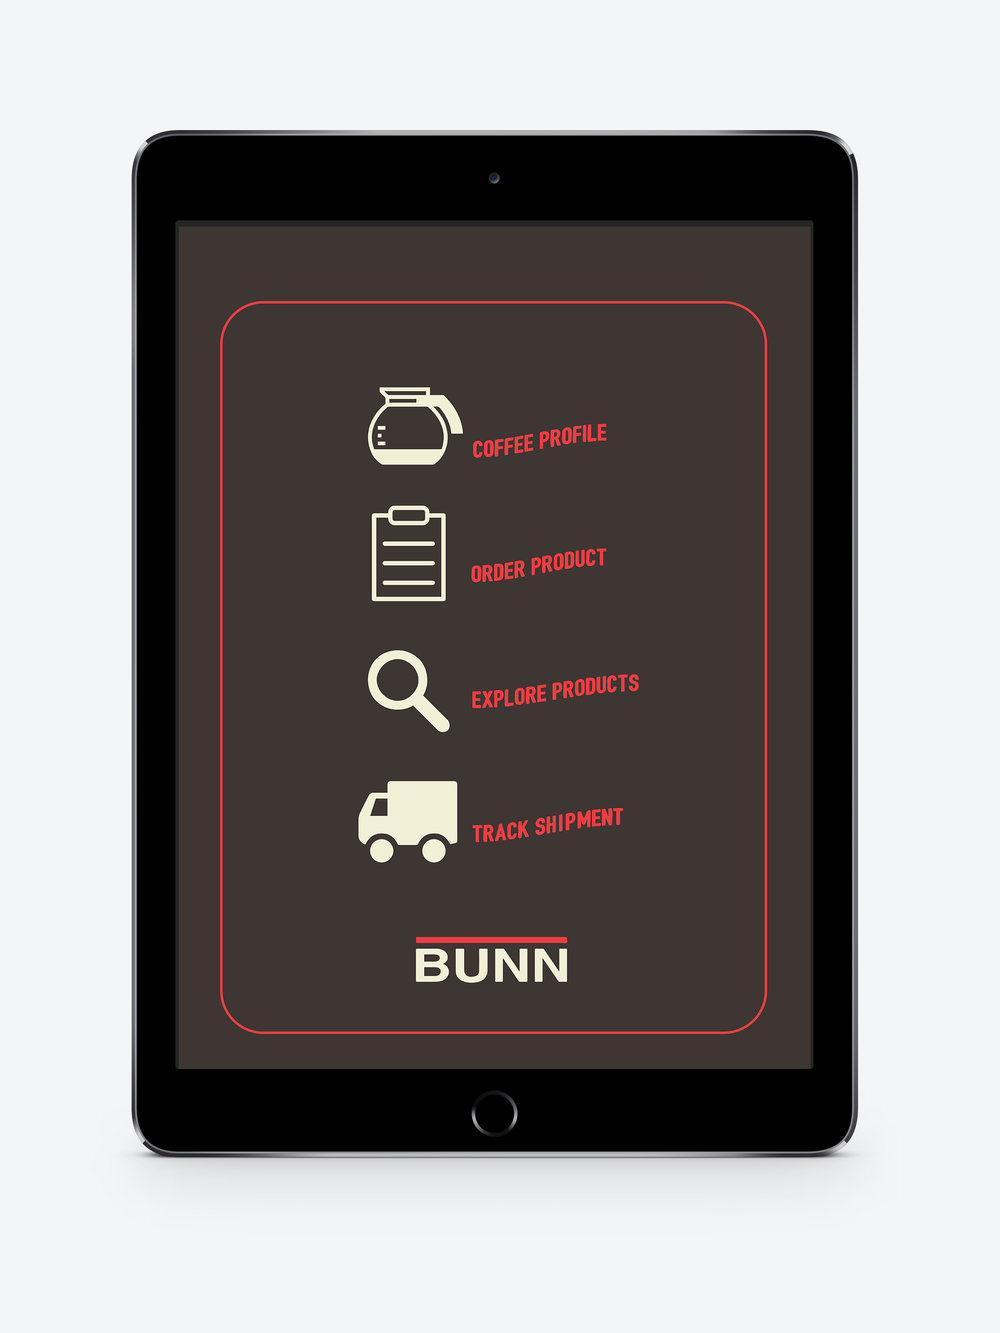 Bunn_Ipad_screen3.jpg